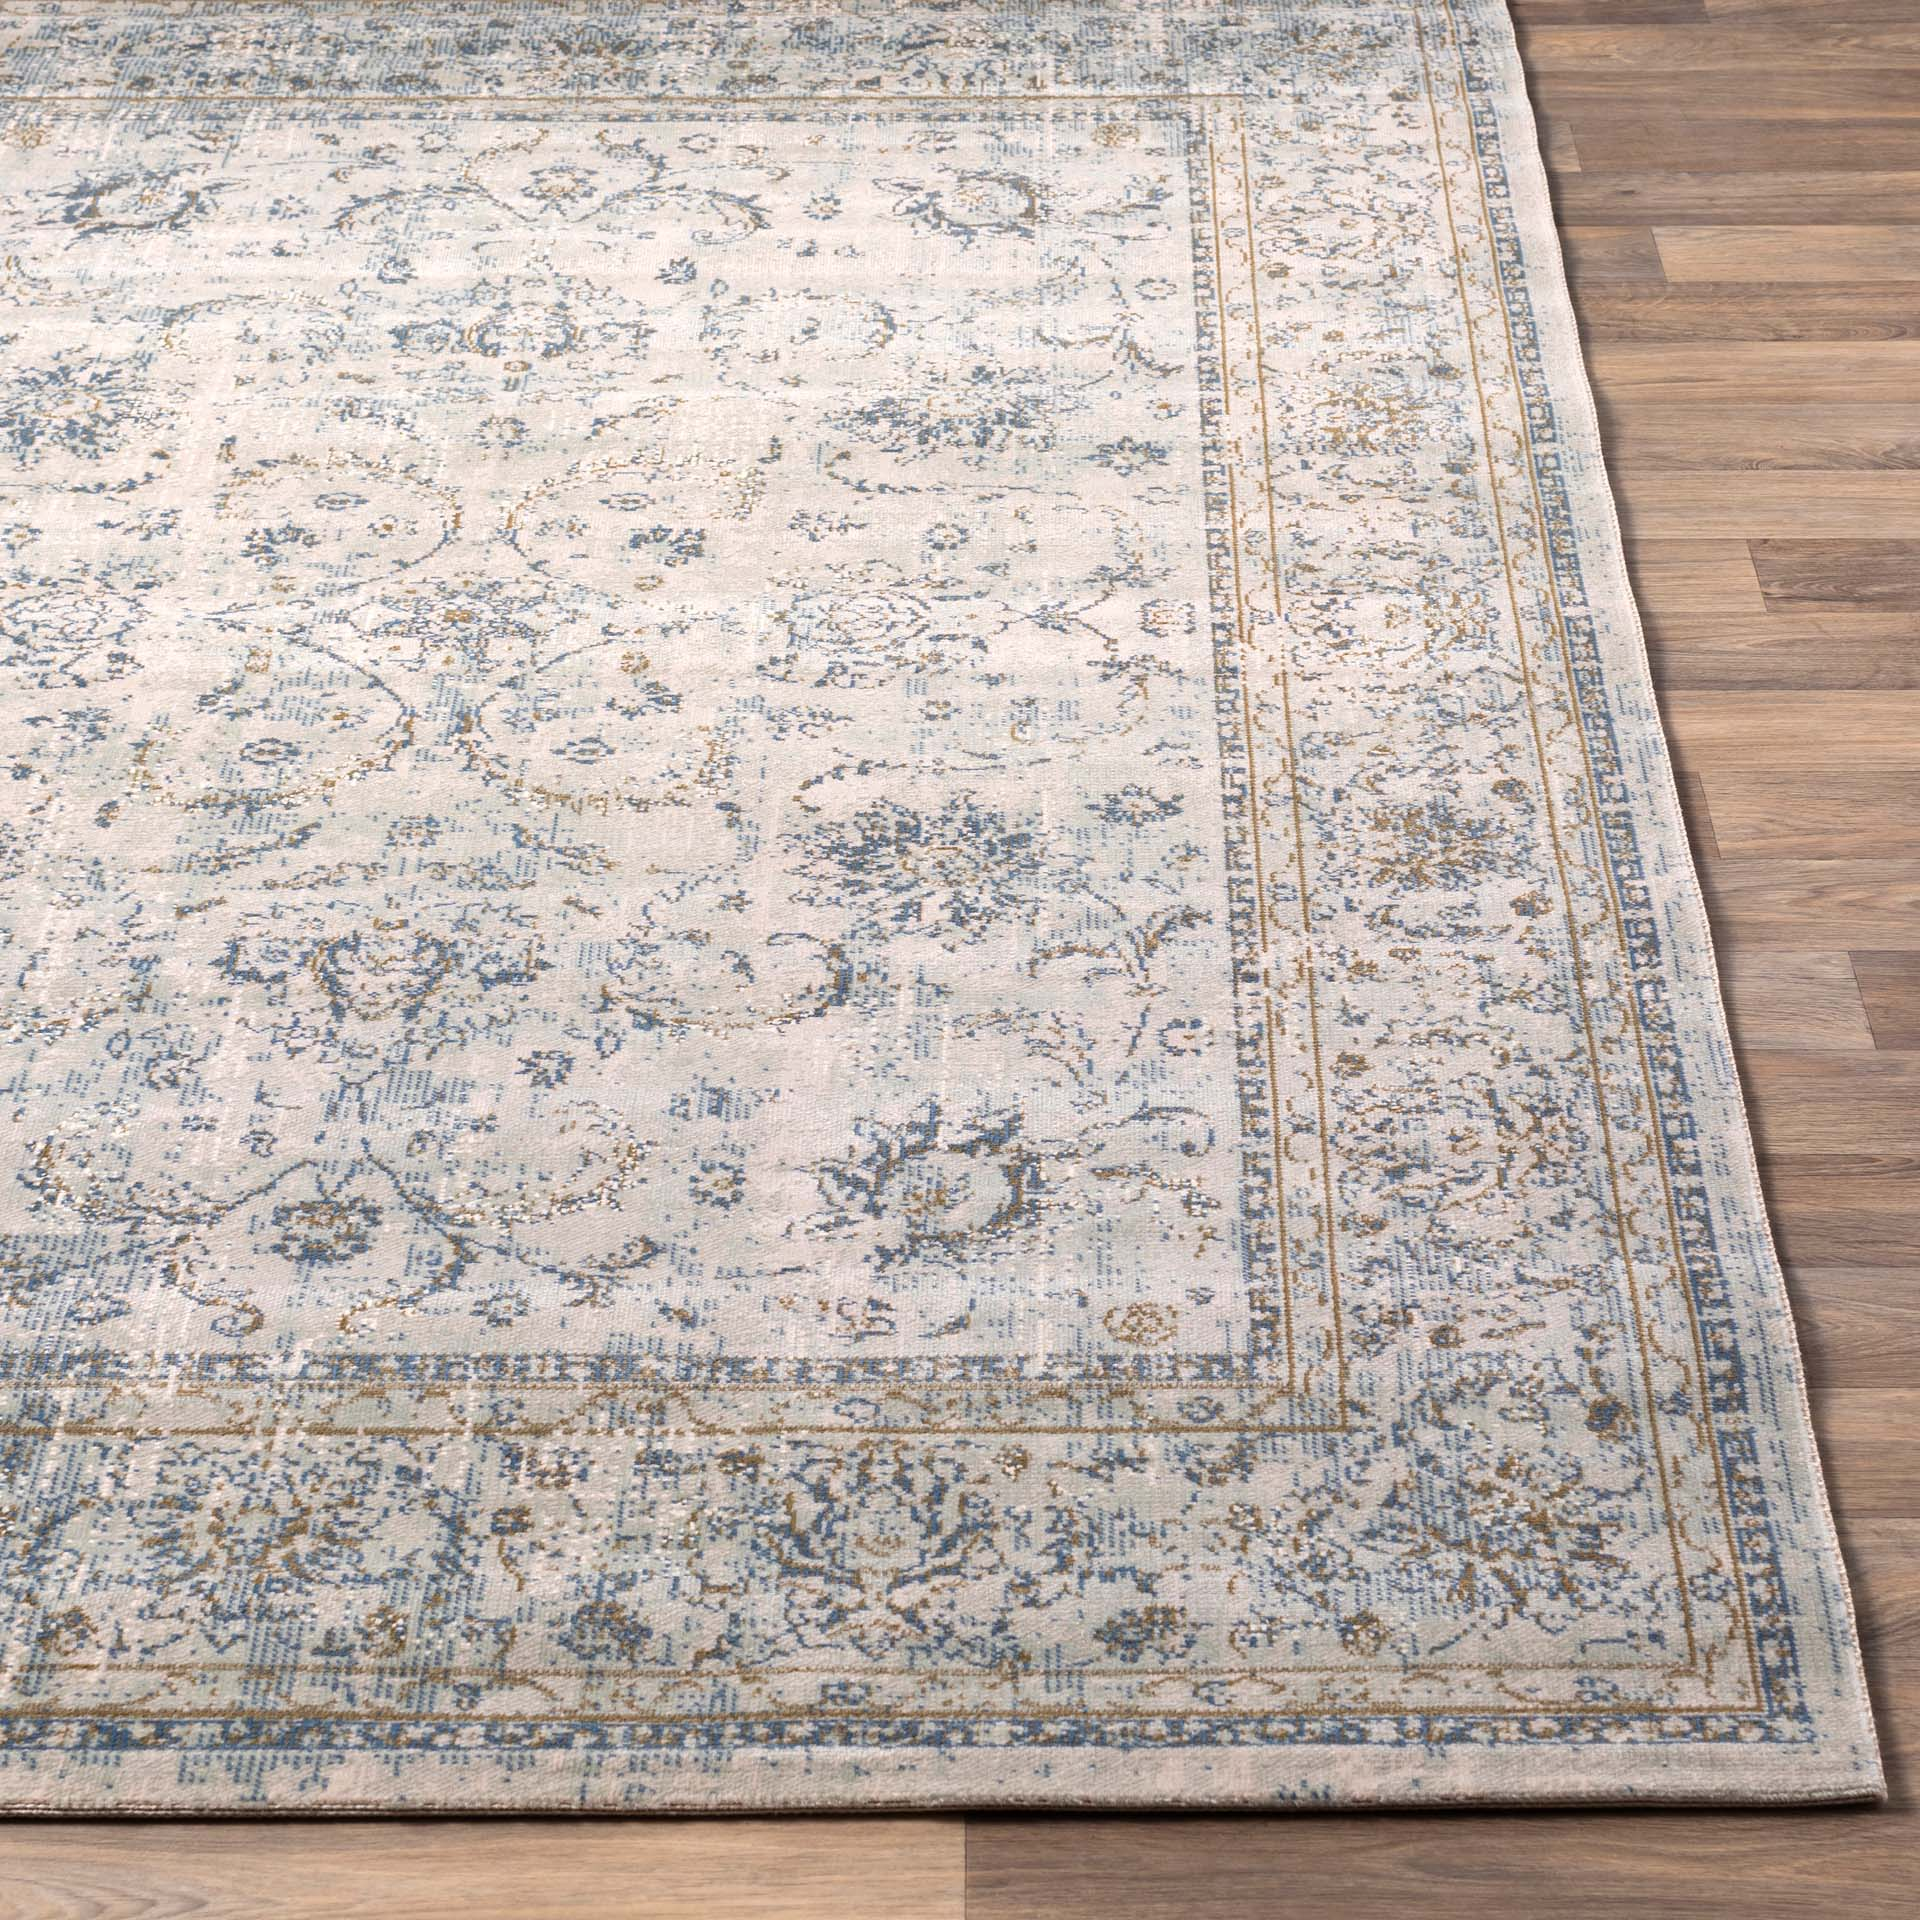 Classic machine woven area rug in beige with blue and green accents	on light wood floor